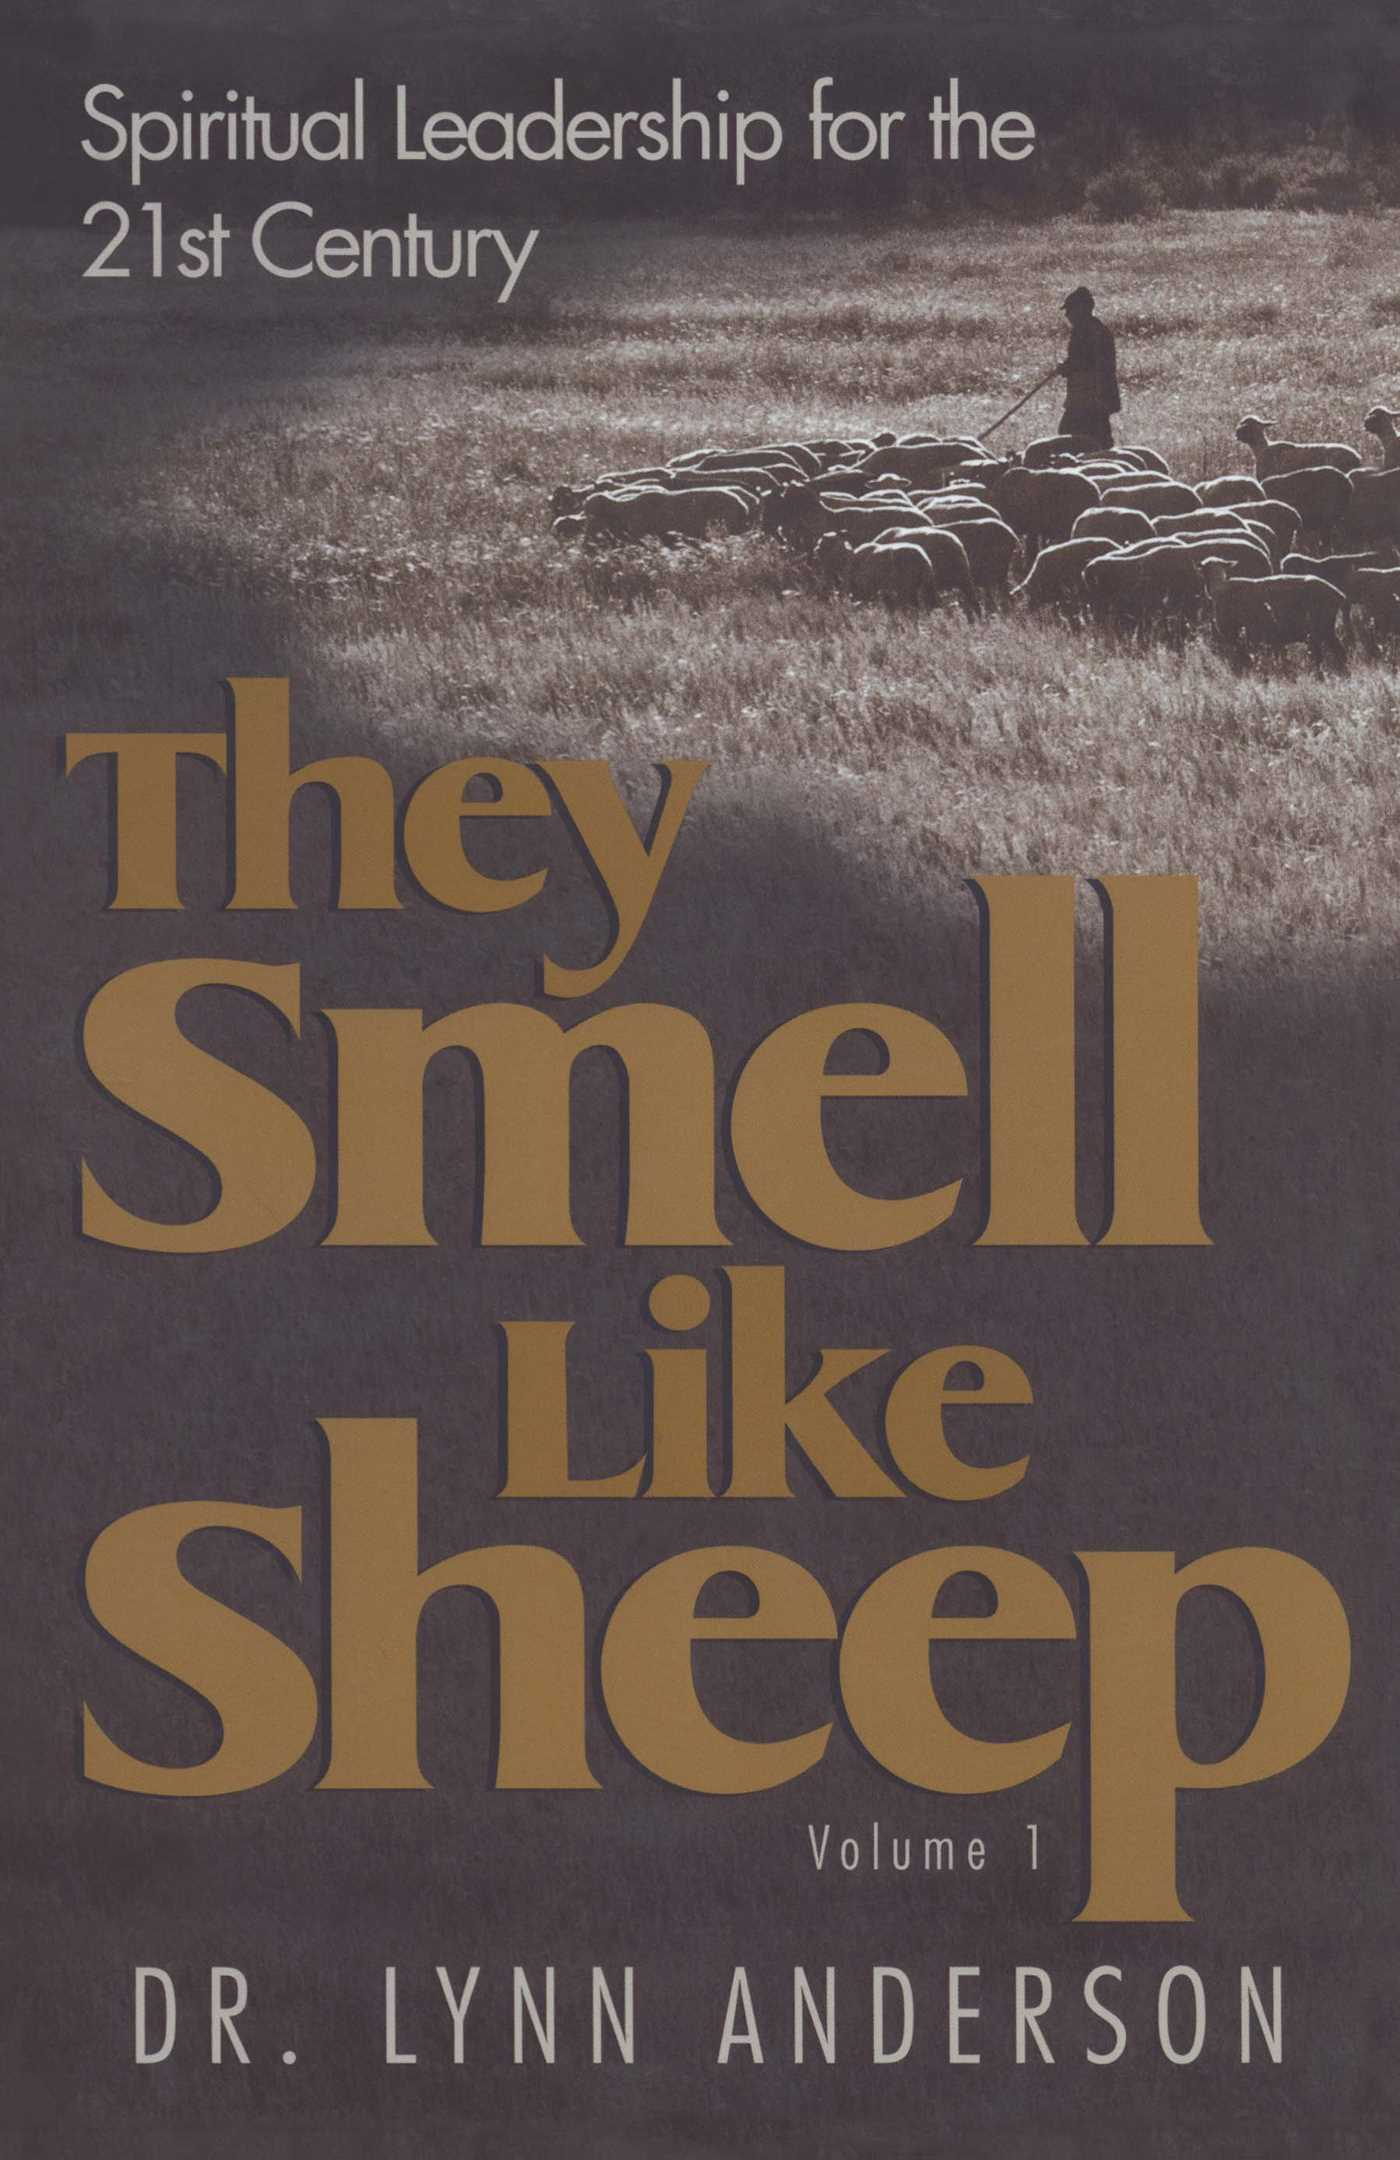 They smell like sheep 9781582292977 hr